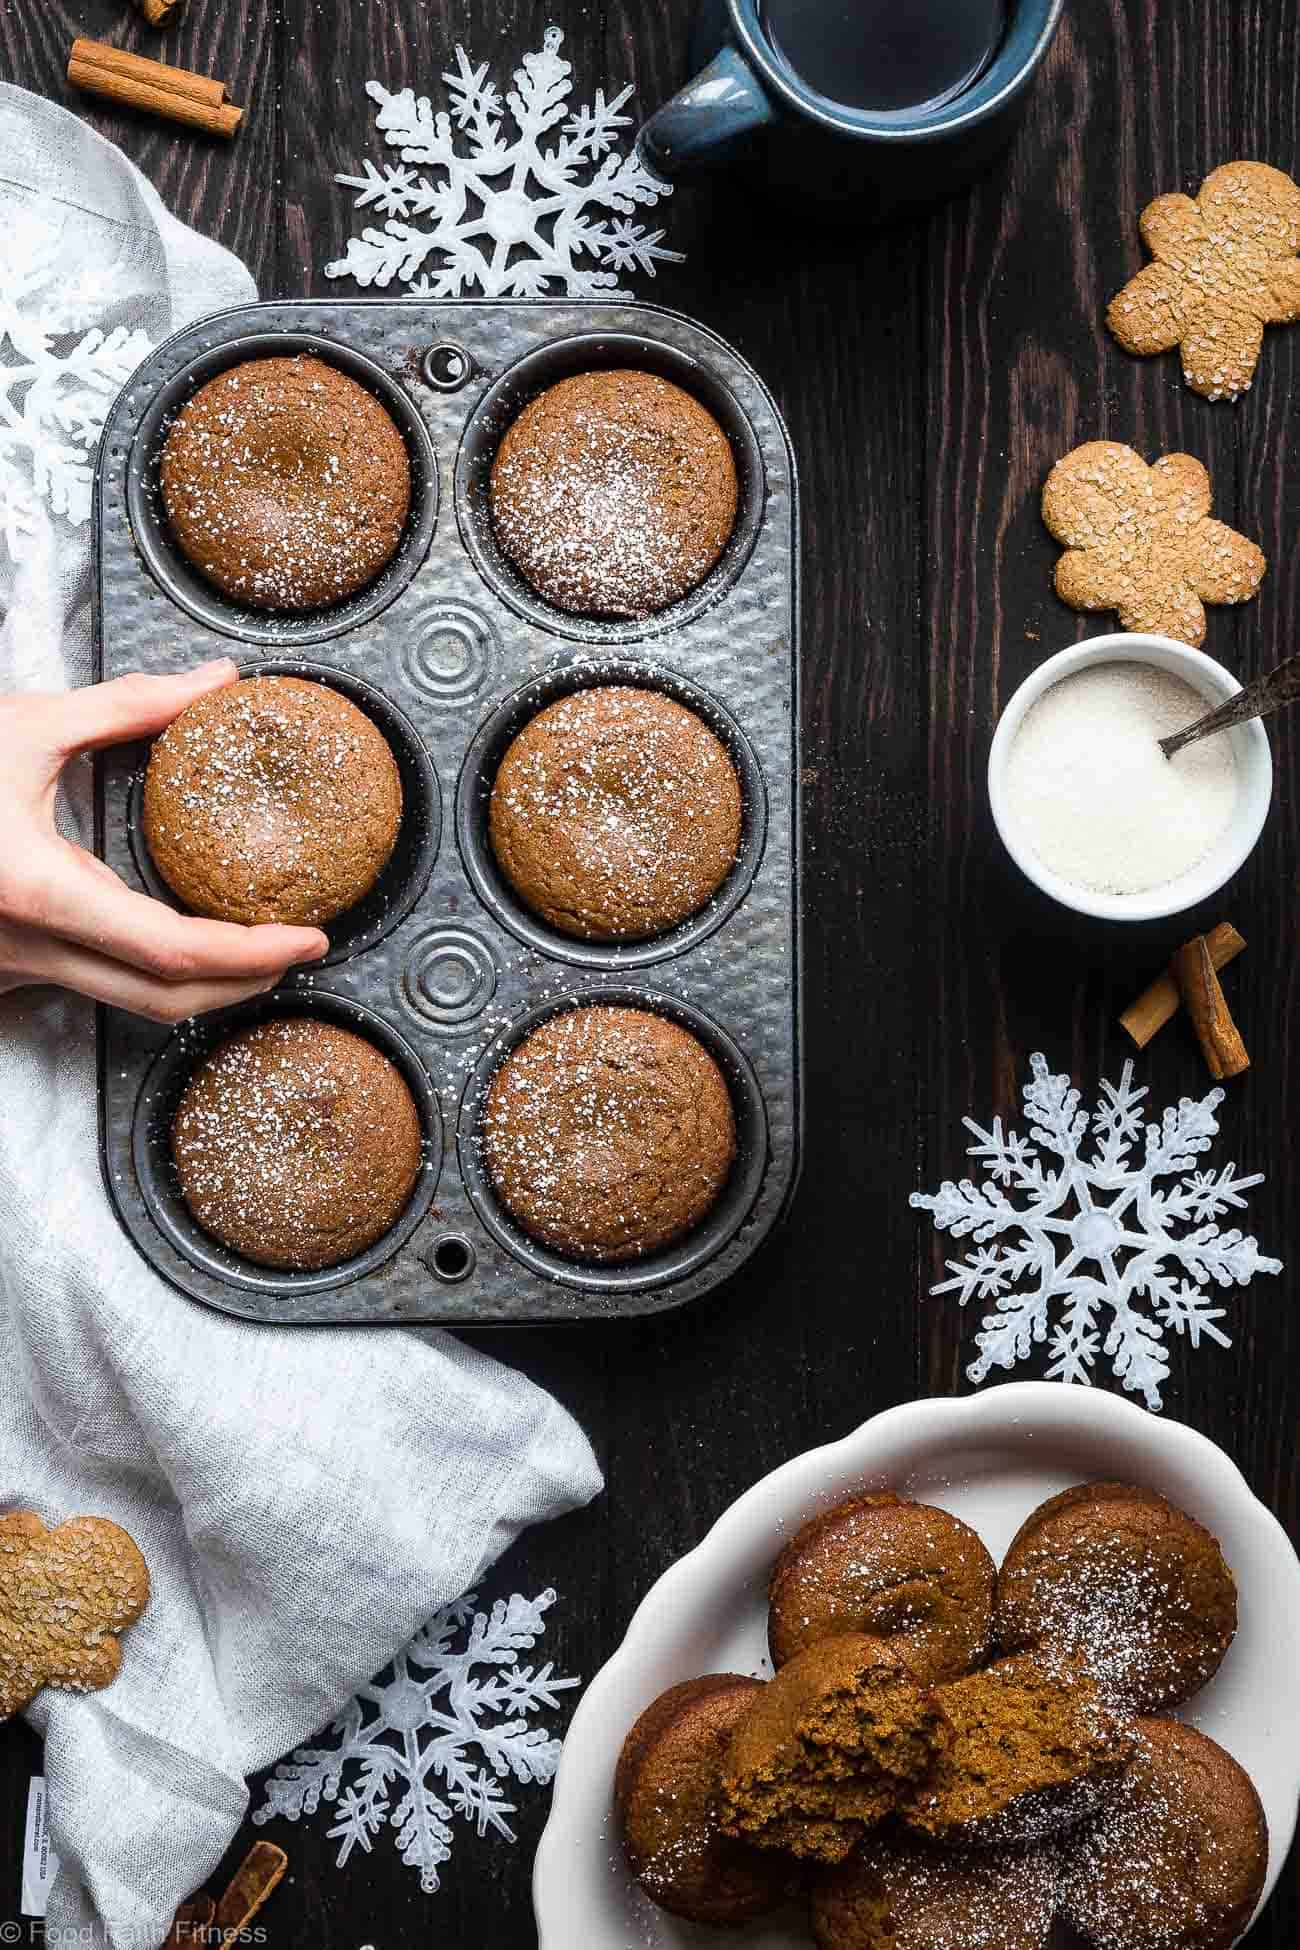 The BEST Healthy Gluten Free Ginger Muffins  - This truly is the best healthy gingerbread muffin recipe! Dairy and egg free, vegan friendly and only 5 ingredients and perfect for Christmas morning! | Foodfaithfitness.com | @FoodFaithFit